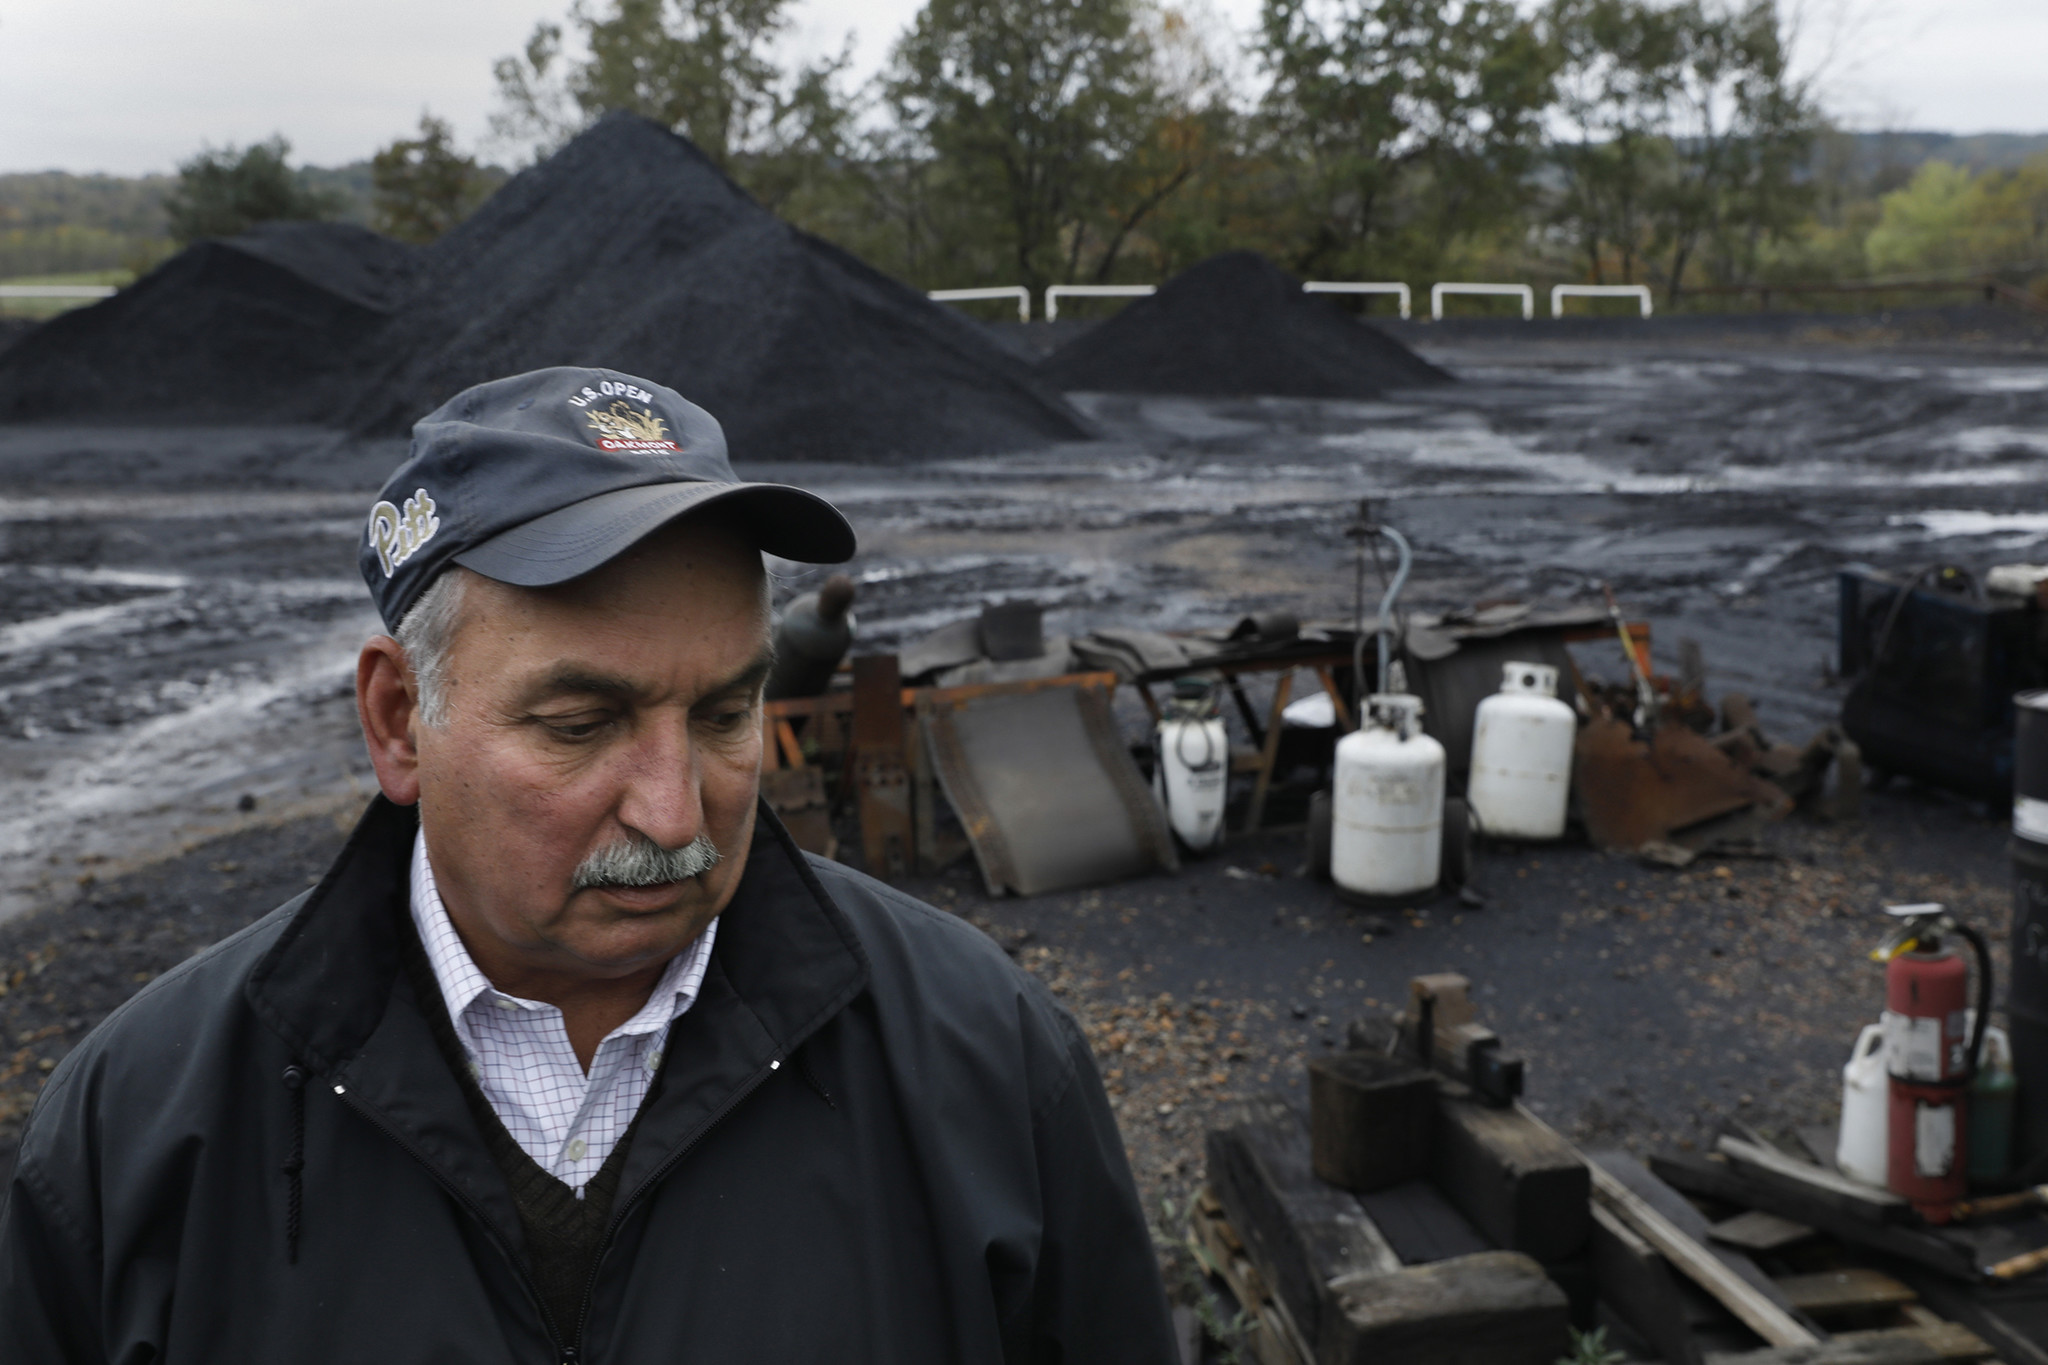 David Osikowicz, age 66, is owner of Original Fuels, a coal brokerage and four affiliated coal mines in Punxsutawney, Pa. Five years ago this whole lot would be piled high with coal, but demand has fallen sharply.